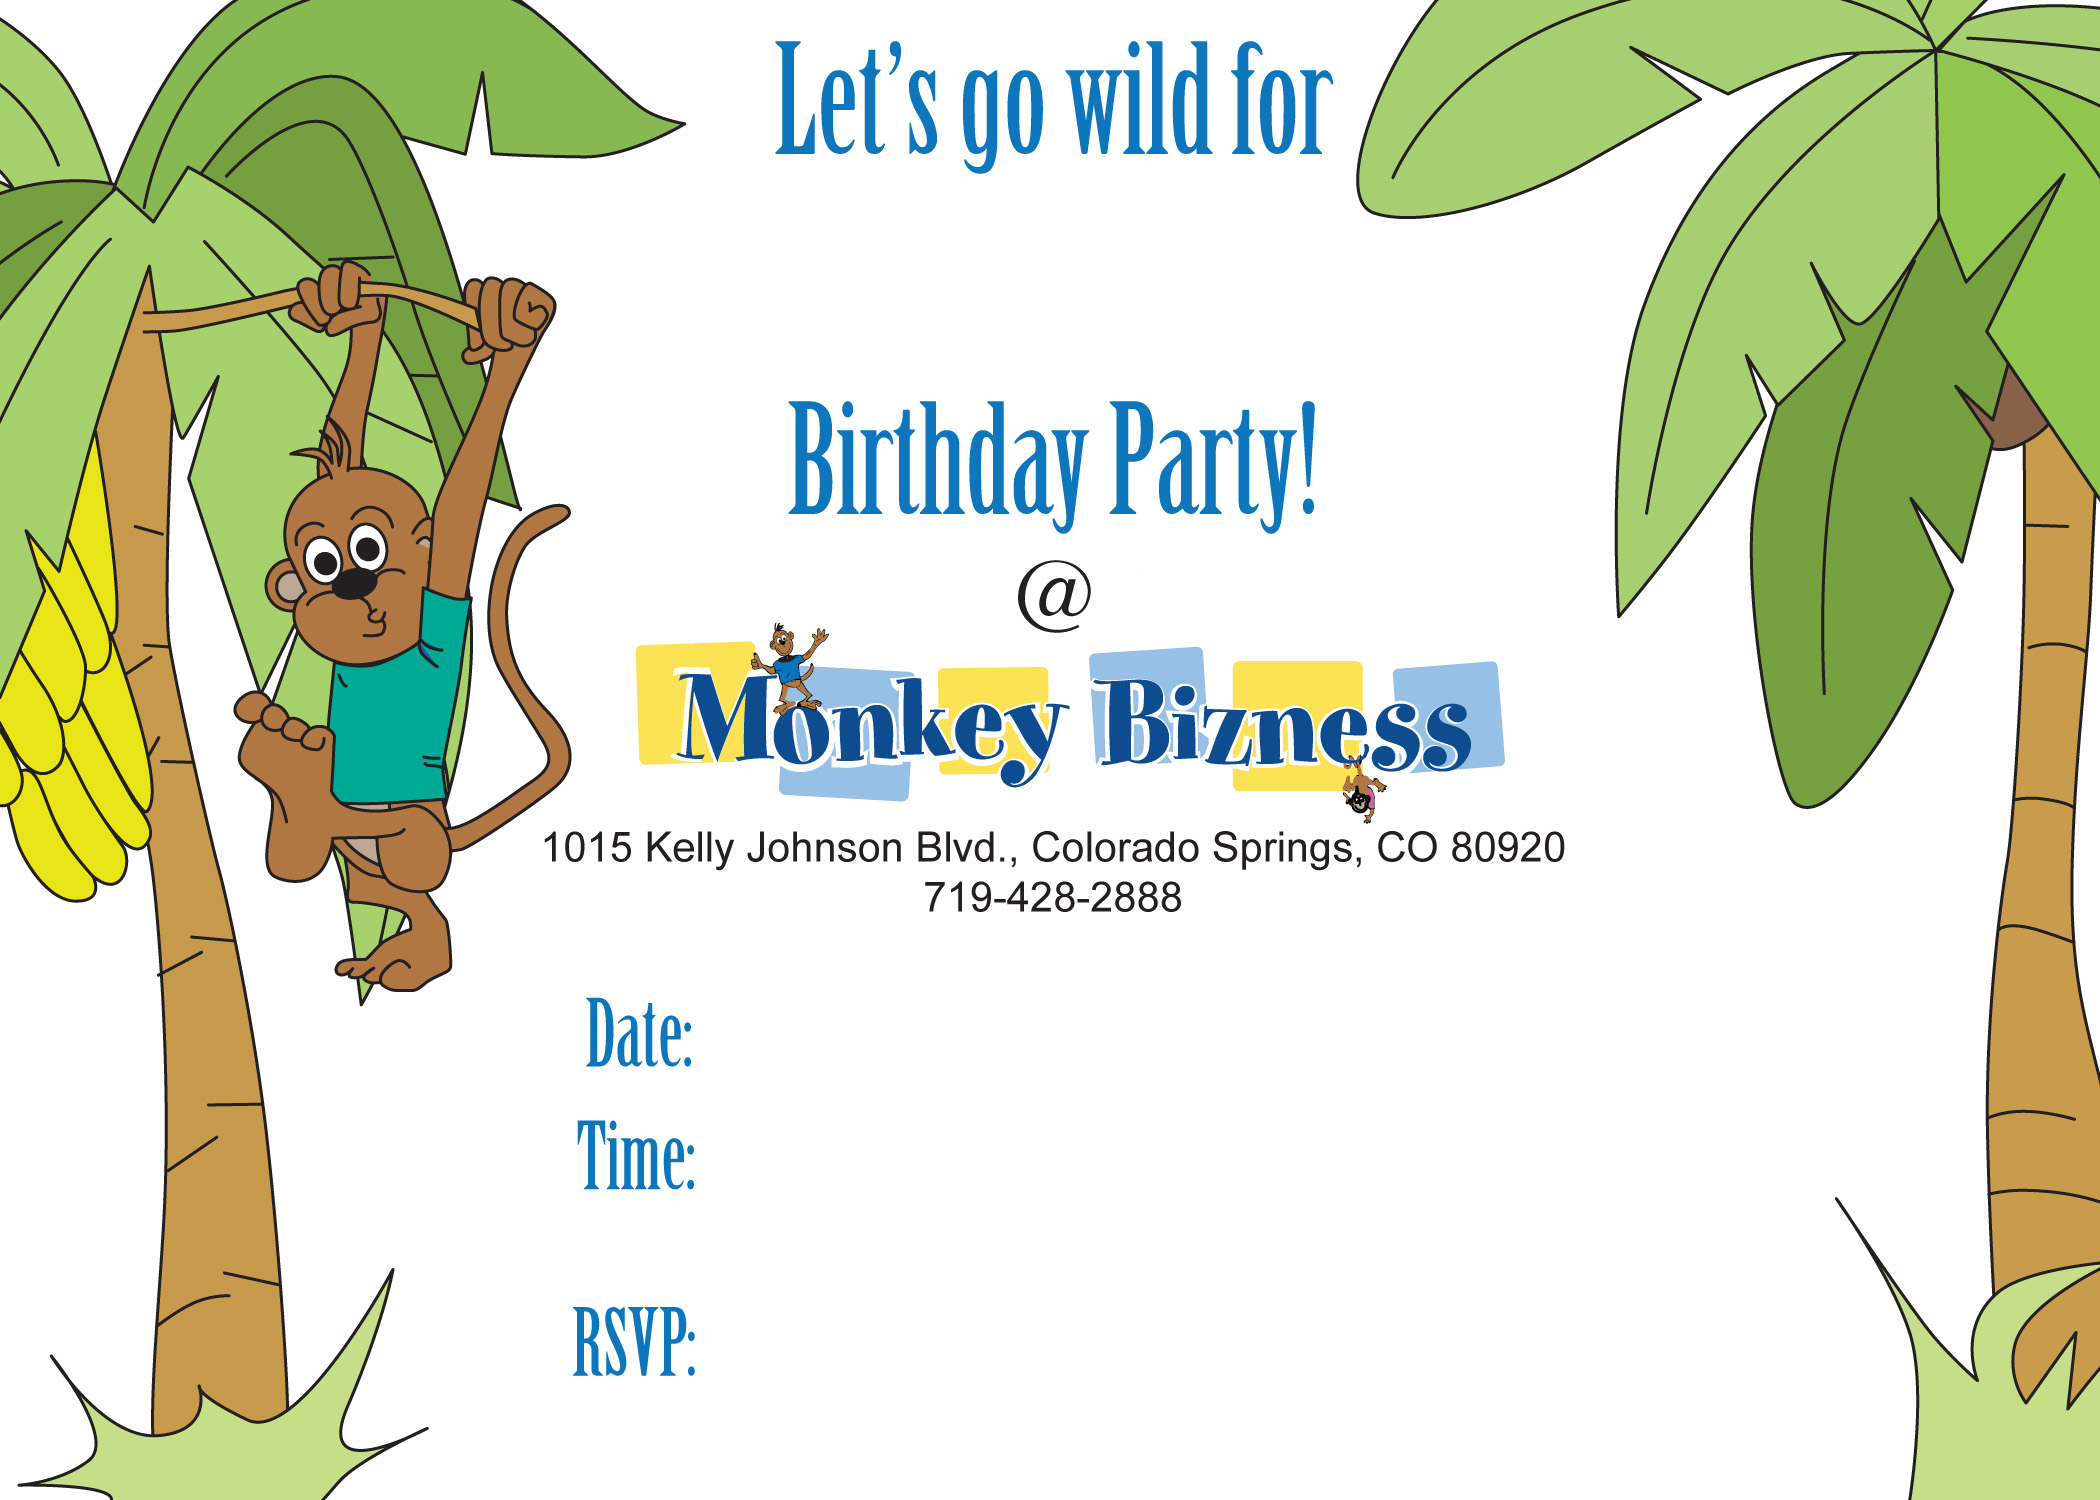 Birthday Invitations | Little Monkey Bizness - Colorado Springs